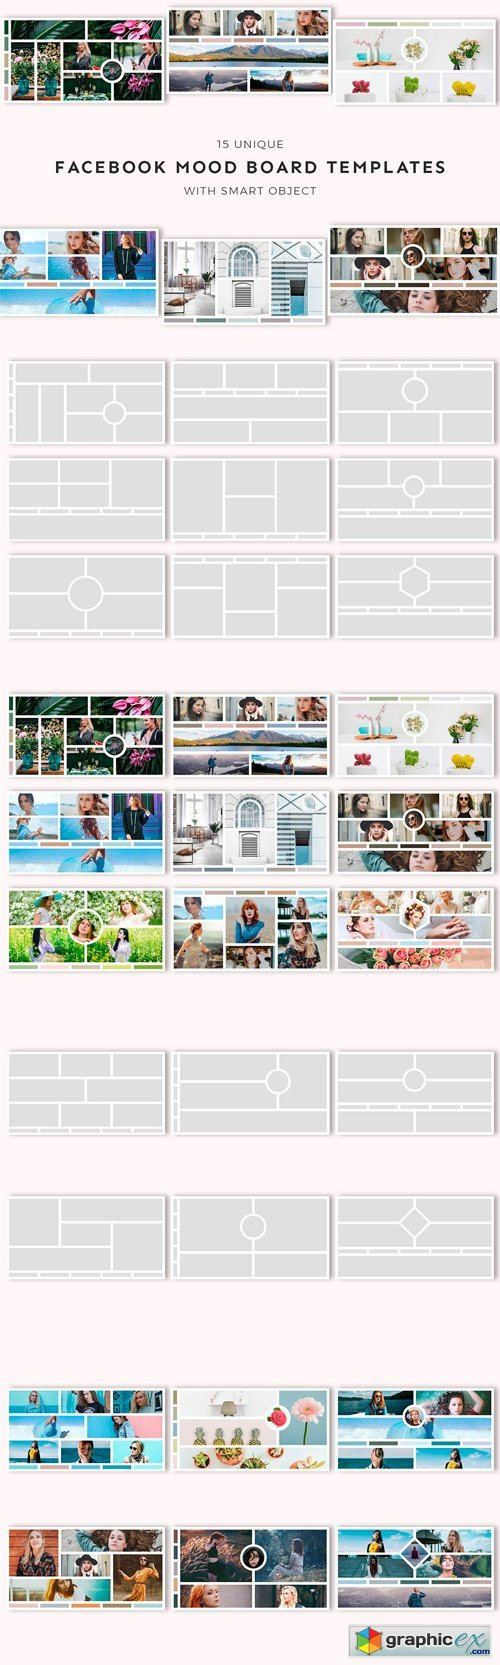 15 Facebook Mood Board Templates